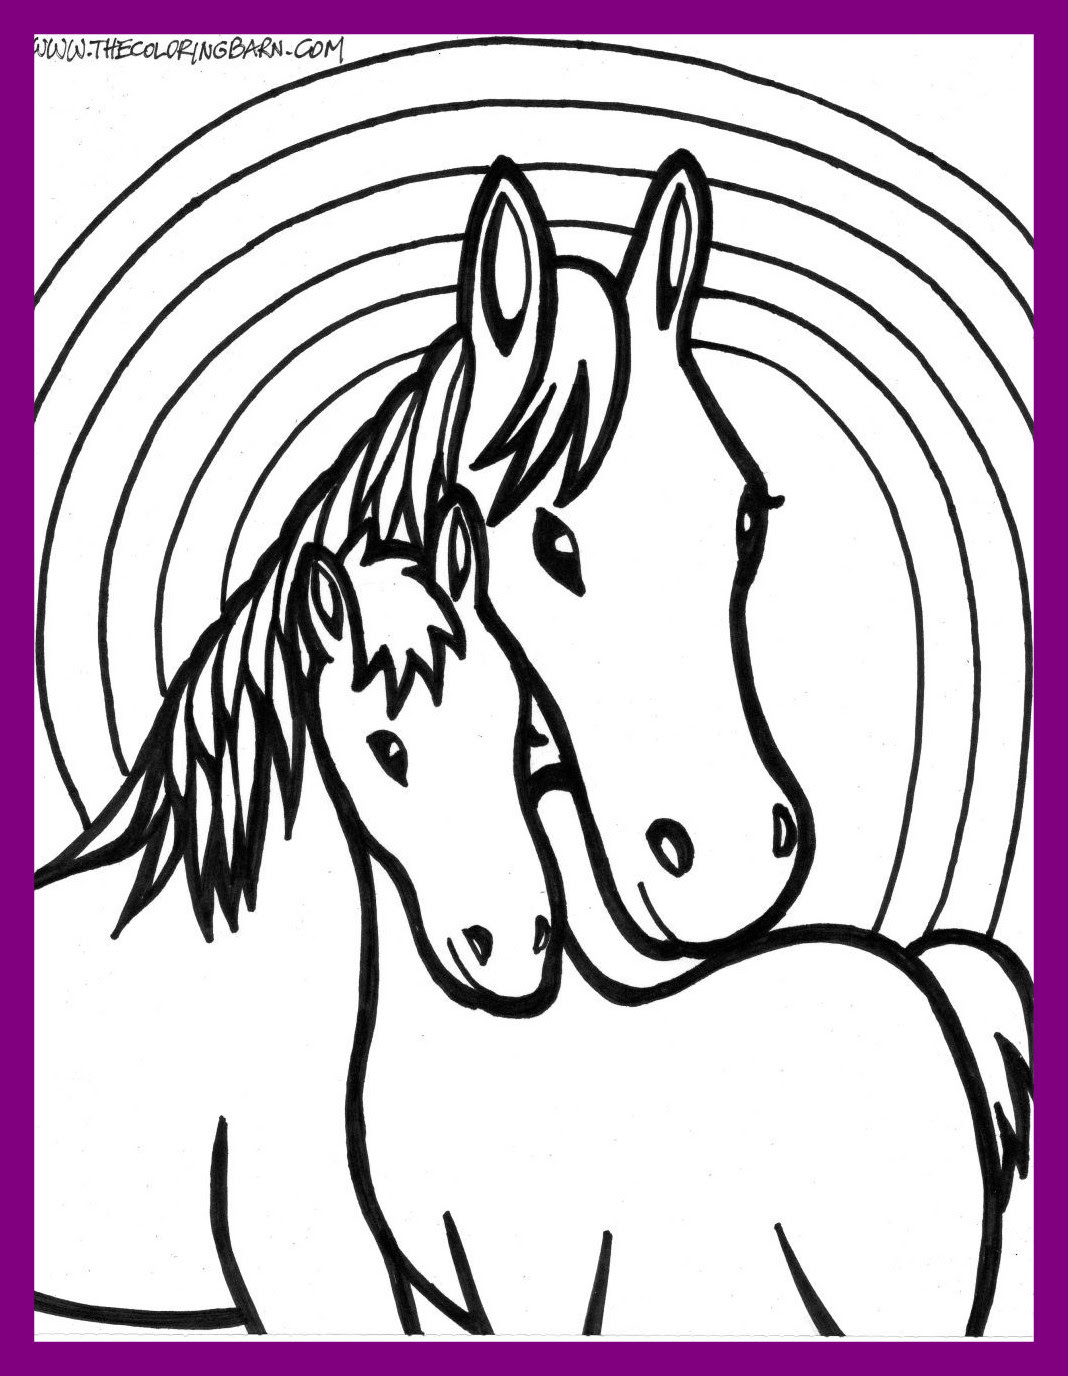 Easy Horse Coloring Pages For Kids   Drawing with Crayons